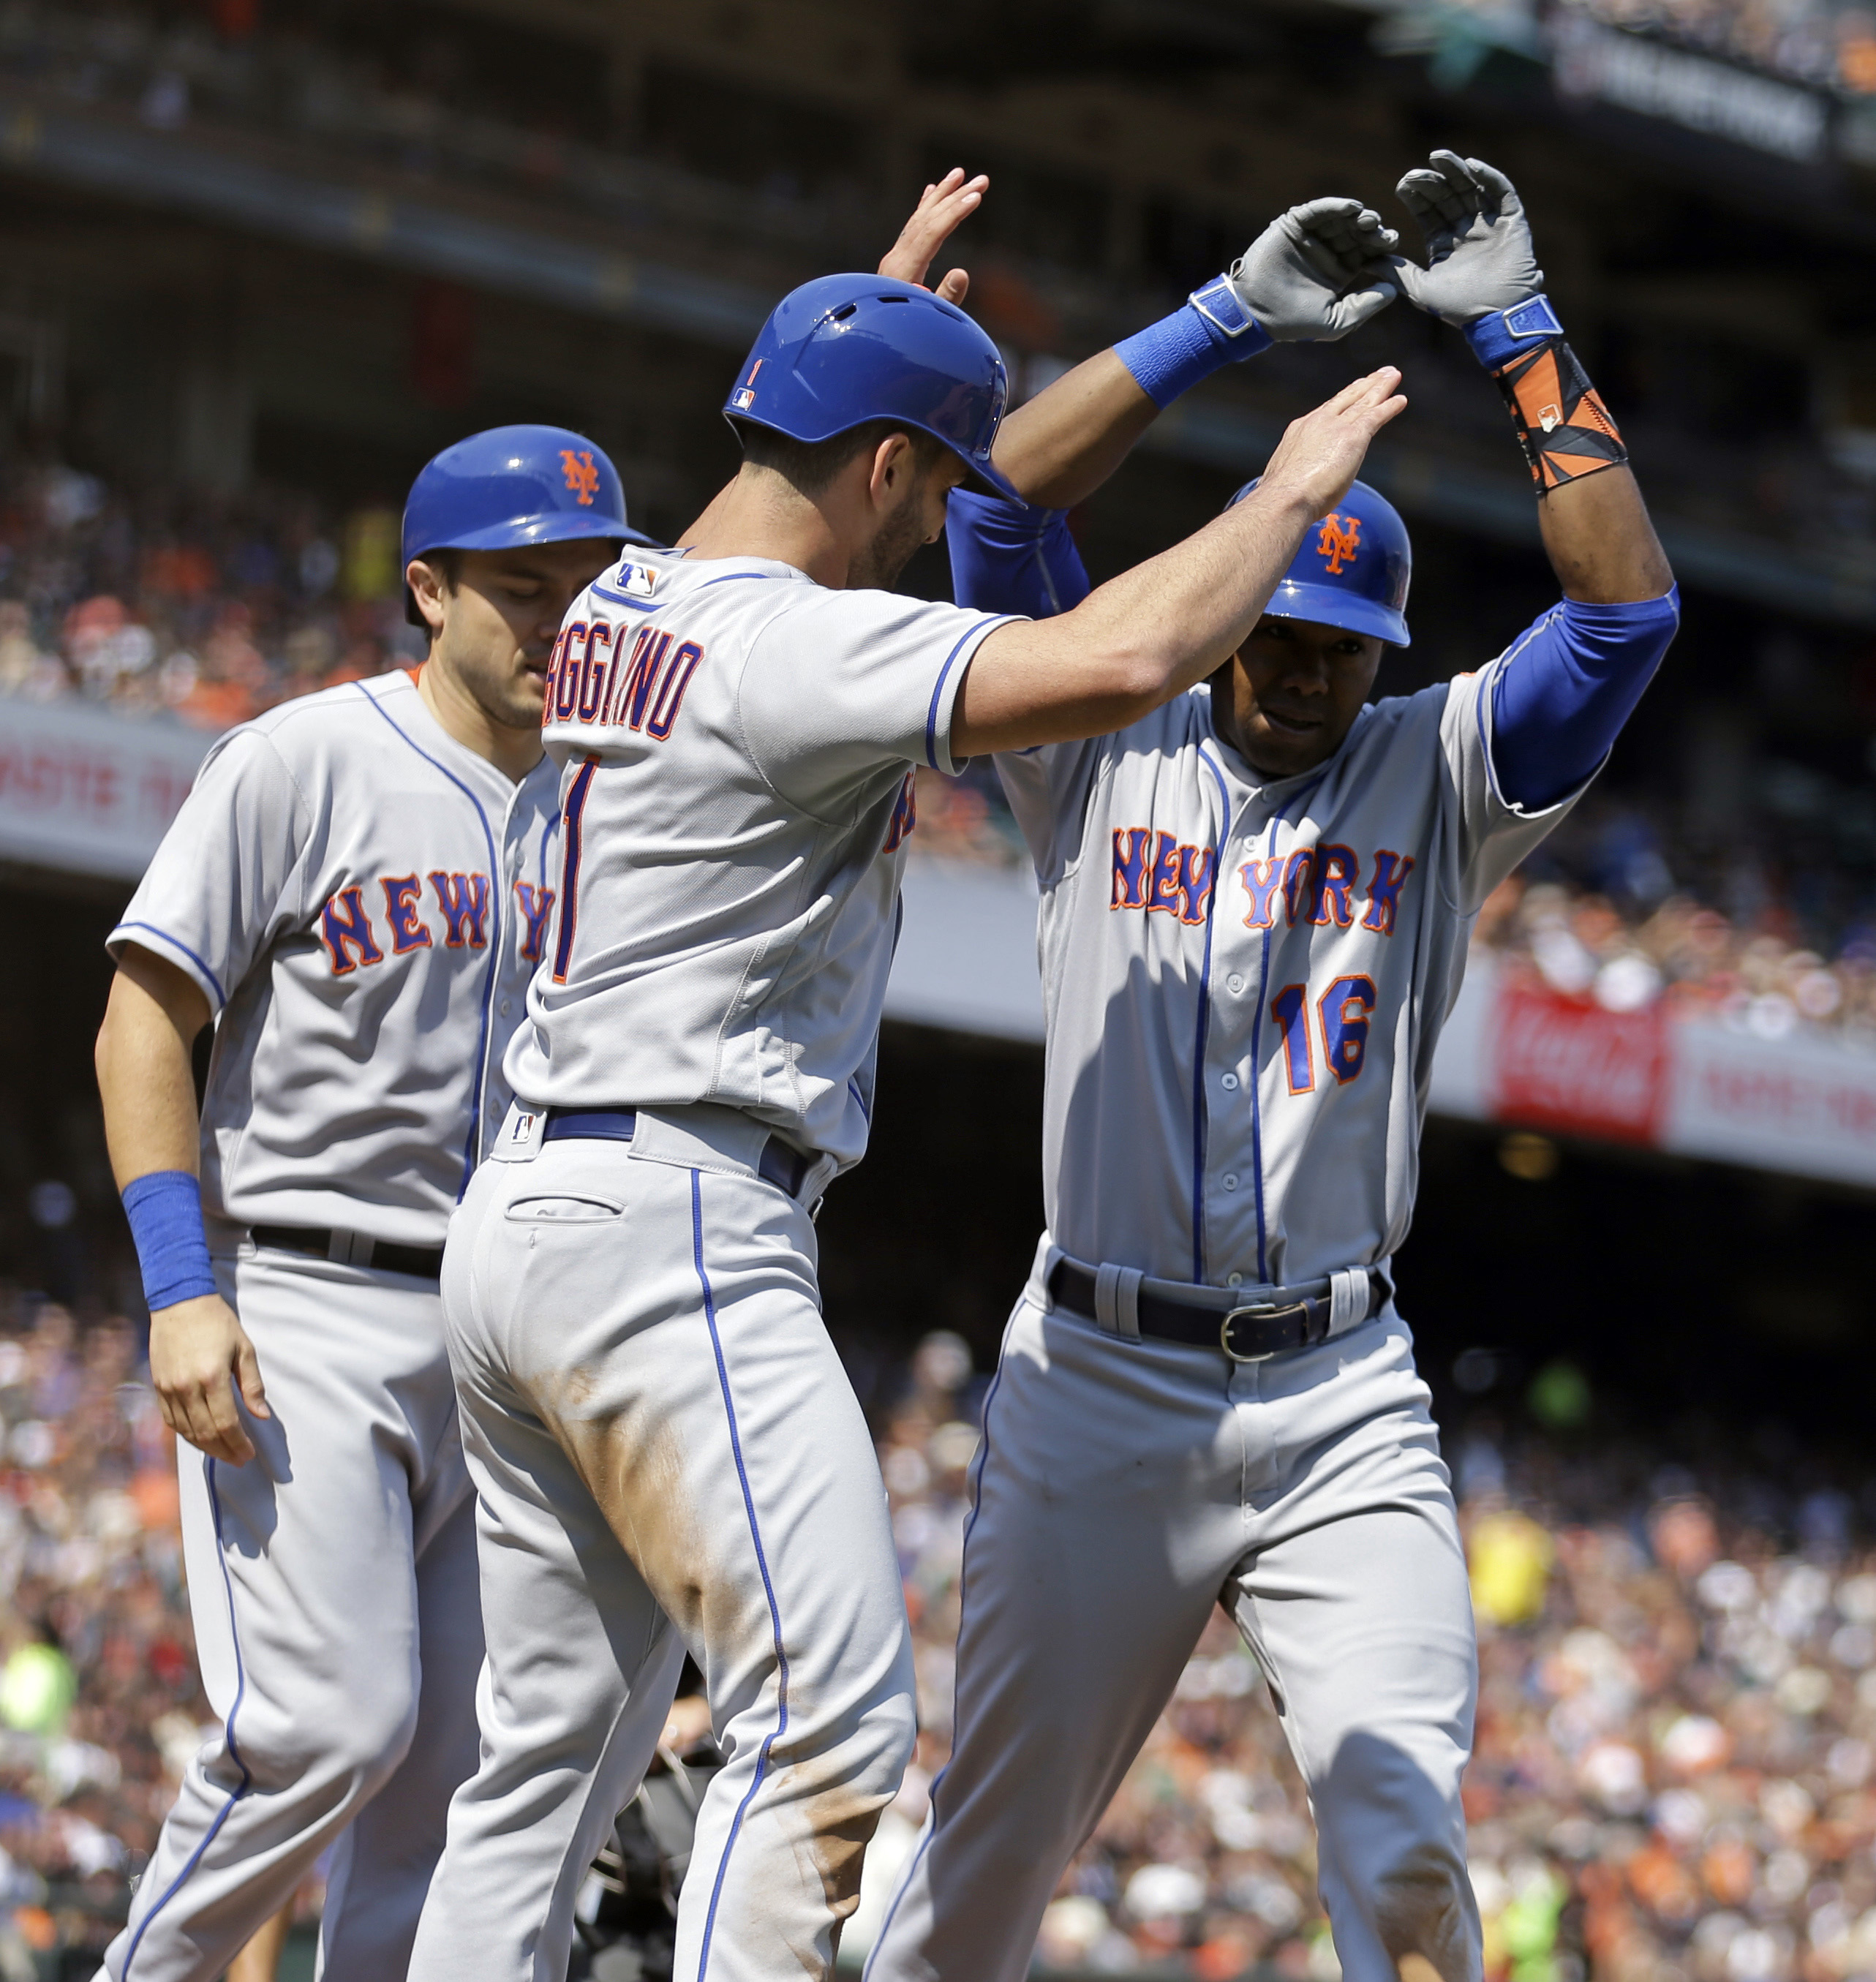 New York Mets' Alejandro De Aza, right, celebrates with Travis d'Arnaud, left, and Justin Ruggiano (1) after hitting a three-run home run off San Francisco Giants' Jake Peavy in the sixth inning of a baseball game Saturday, Aug. 20, 2016, in San Francisco